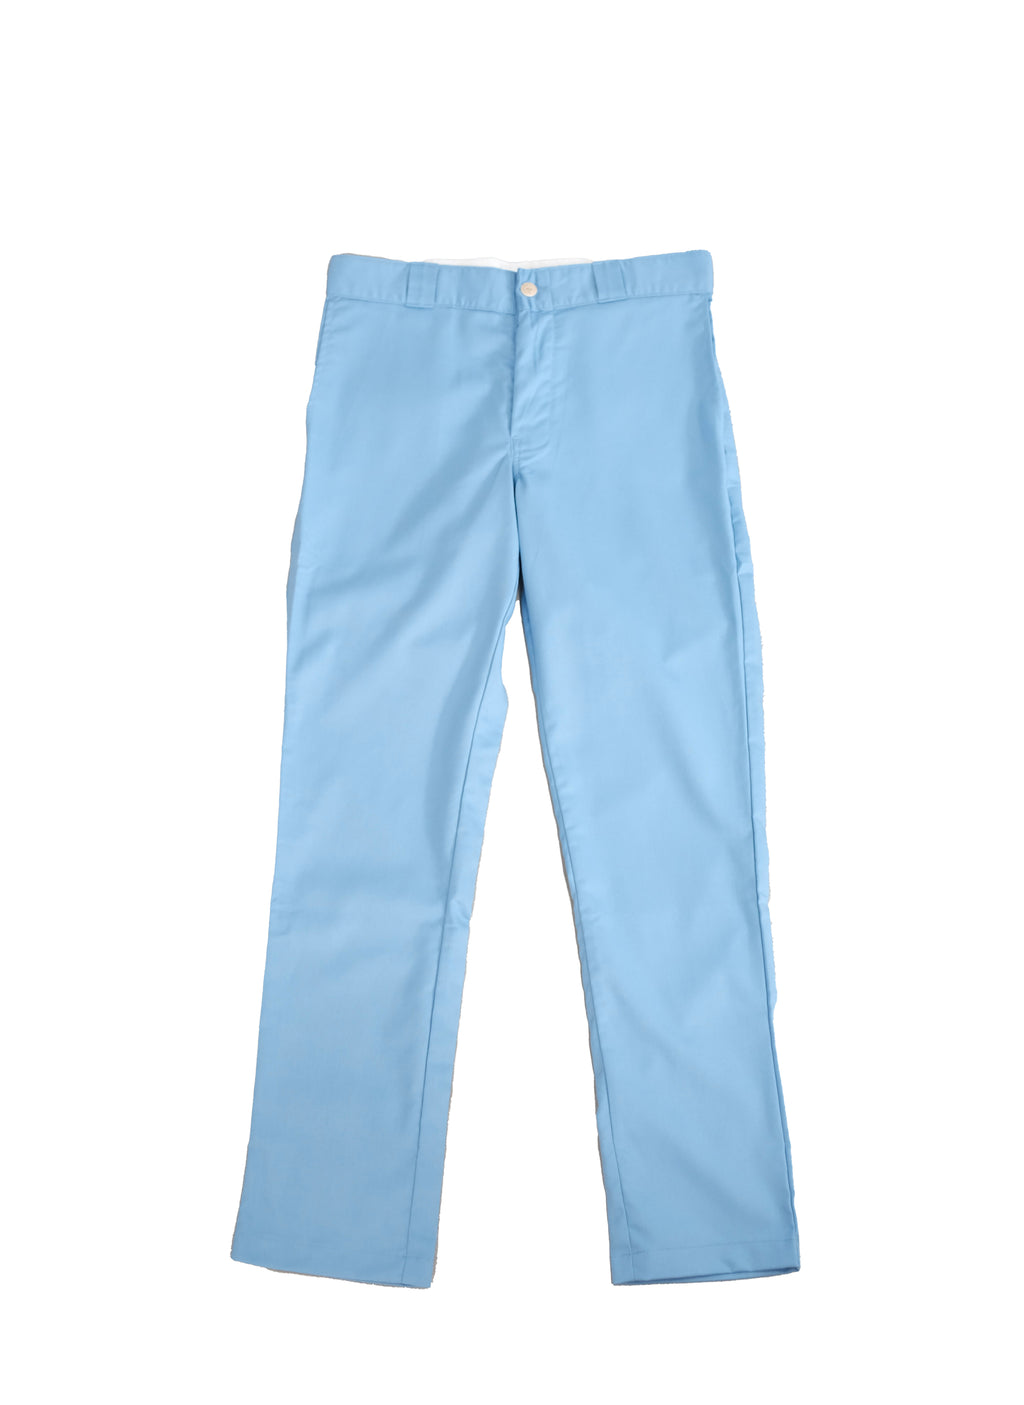 PALMER TRADING COMPANY FOR DICKIES / LOWRIDE CHINO INMATE BLUE